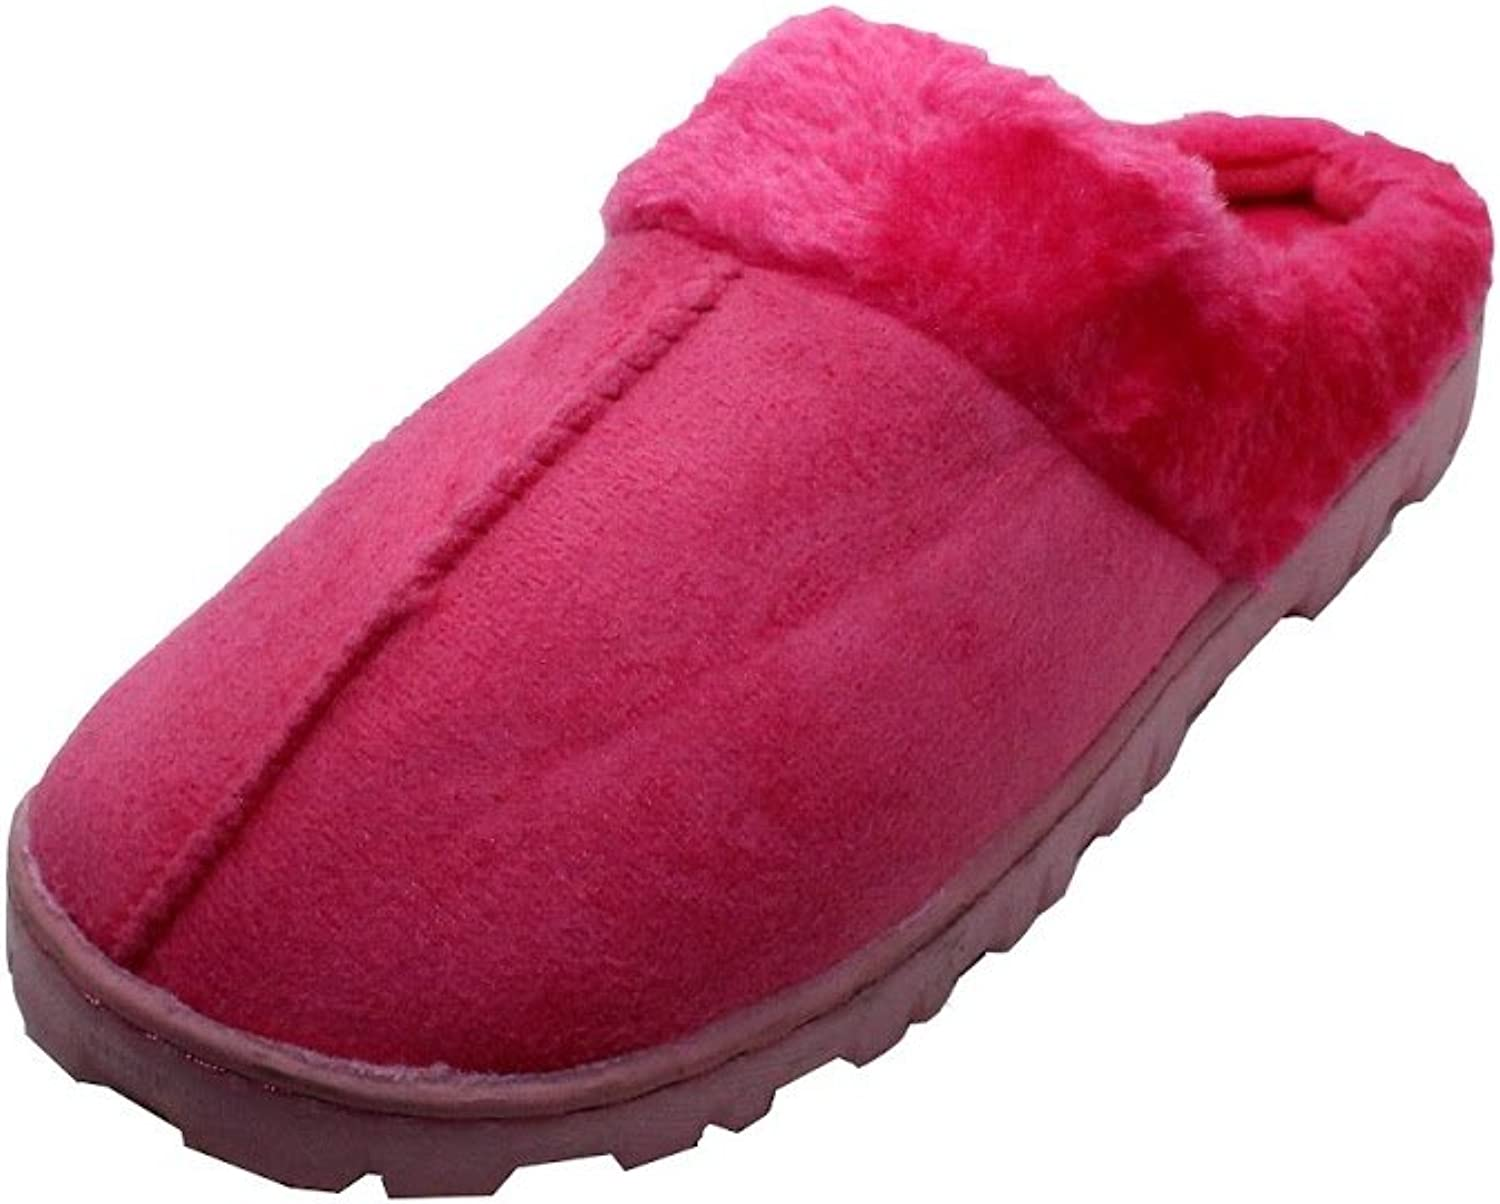 Women's Faux Shearling House Slippers - Black Brown Fuchsia - Indoor Outdoor Slip-ONS (Small (5-6), Fuchsia)